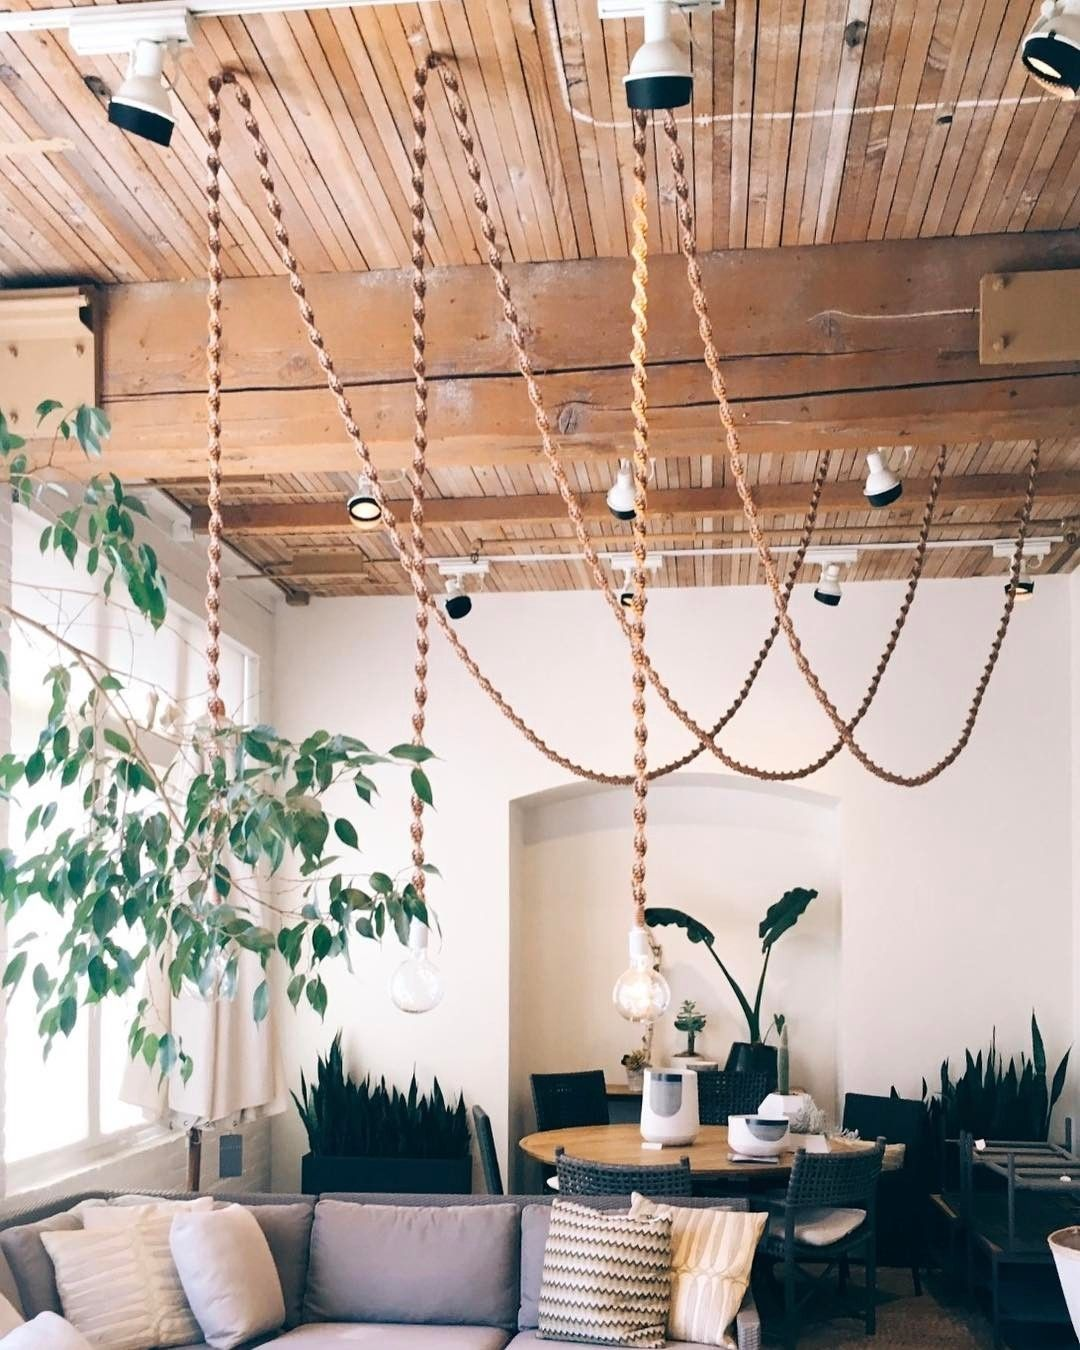 Macrame light cord cover //via Macrame Makers (@macramemakers) on ...